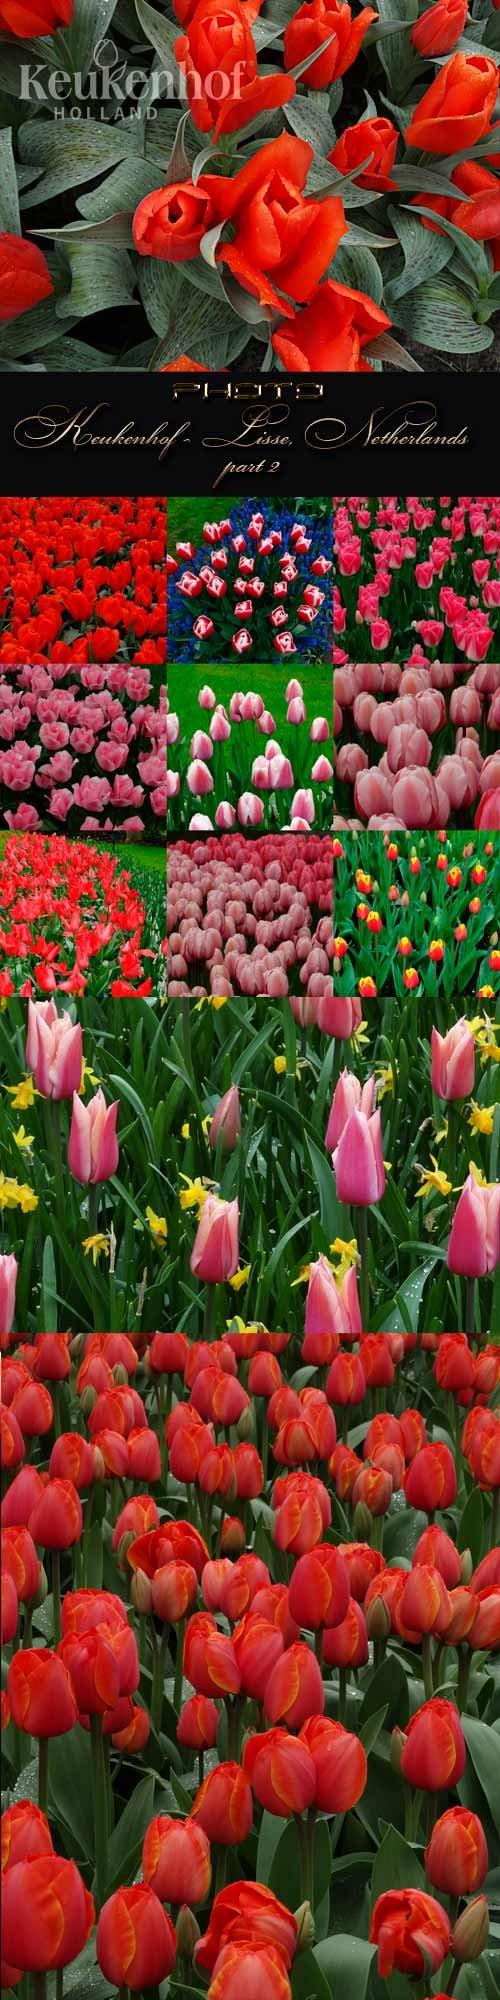 Keukenhof - Lisse, Netherlands part 2